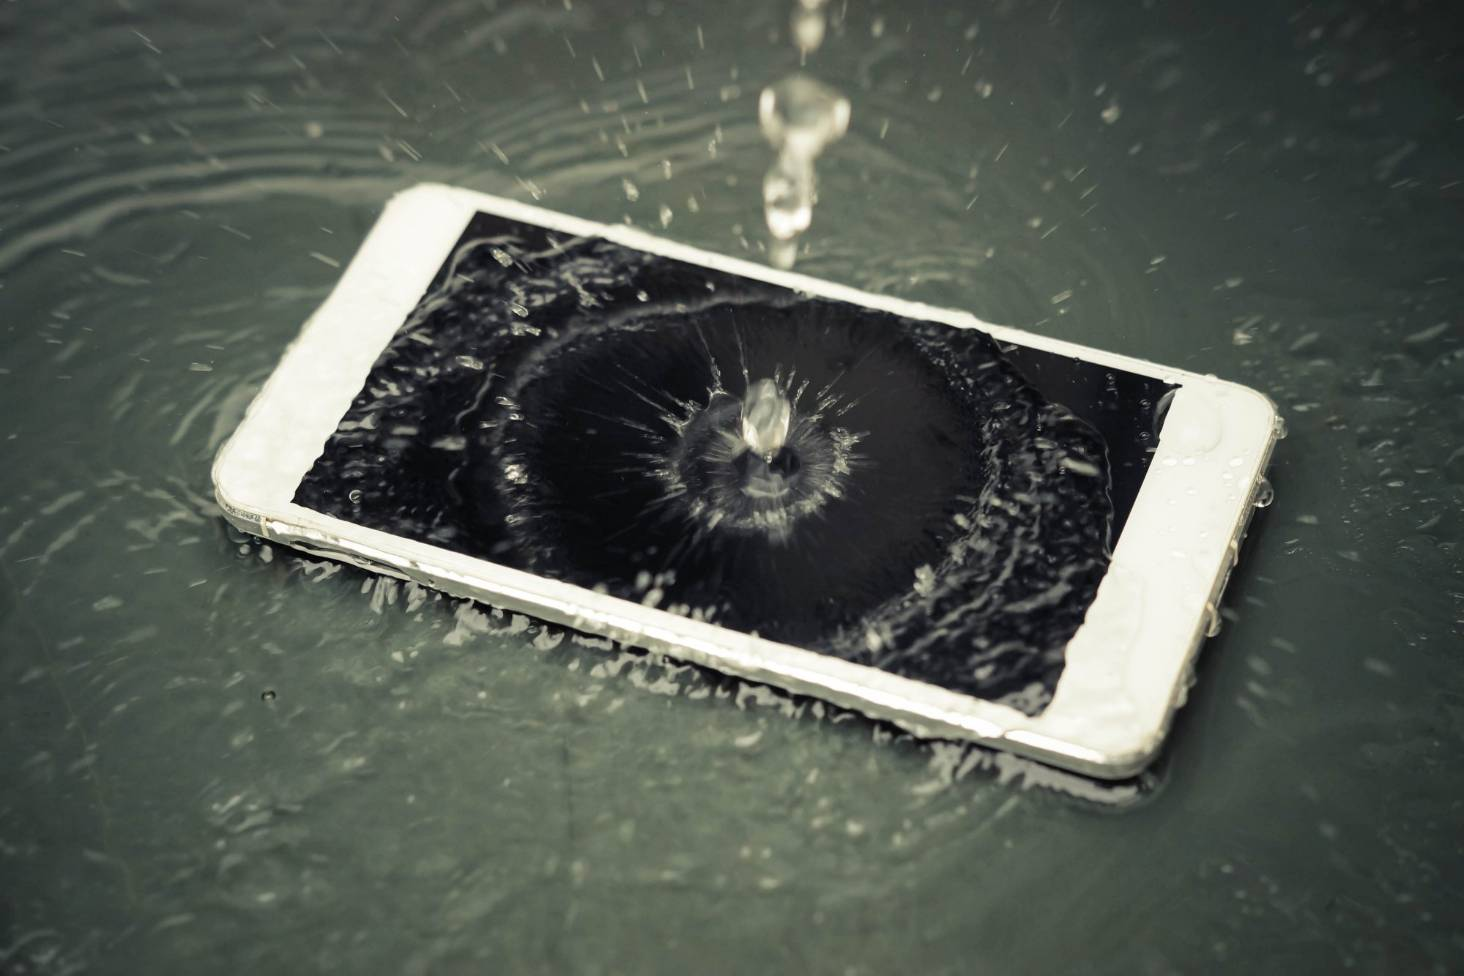 Your Smartphone Got Wet Heres What Not To Do First Waterproof Mobile Phone Circuit Boards